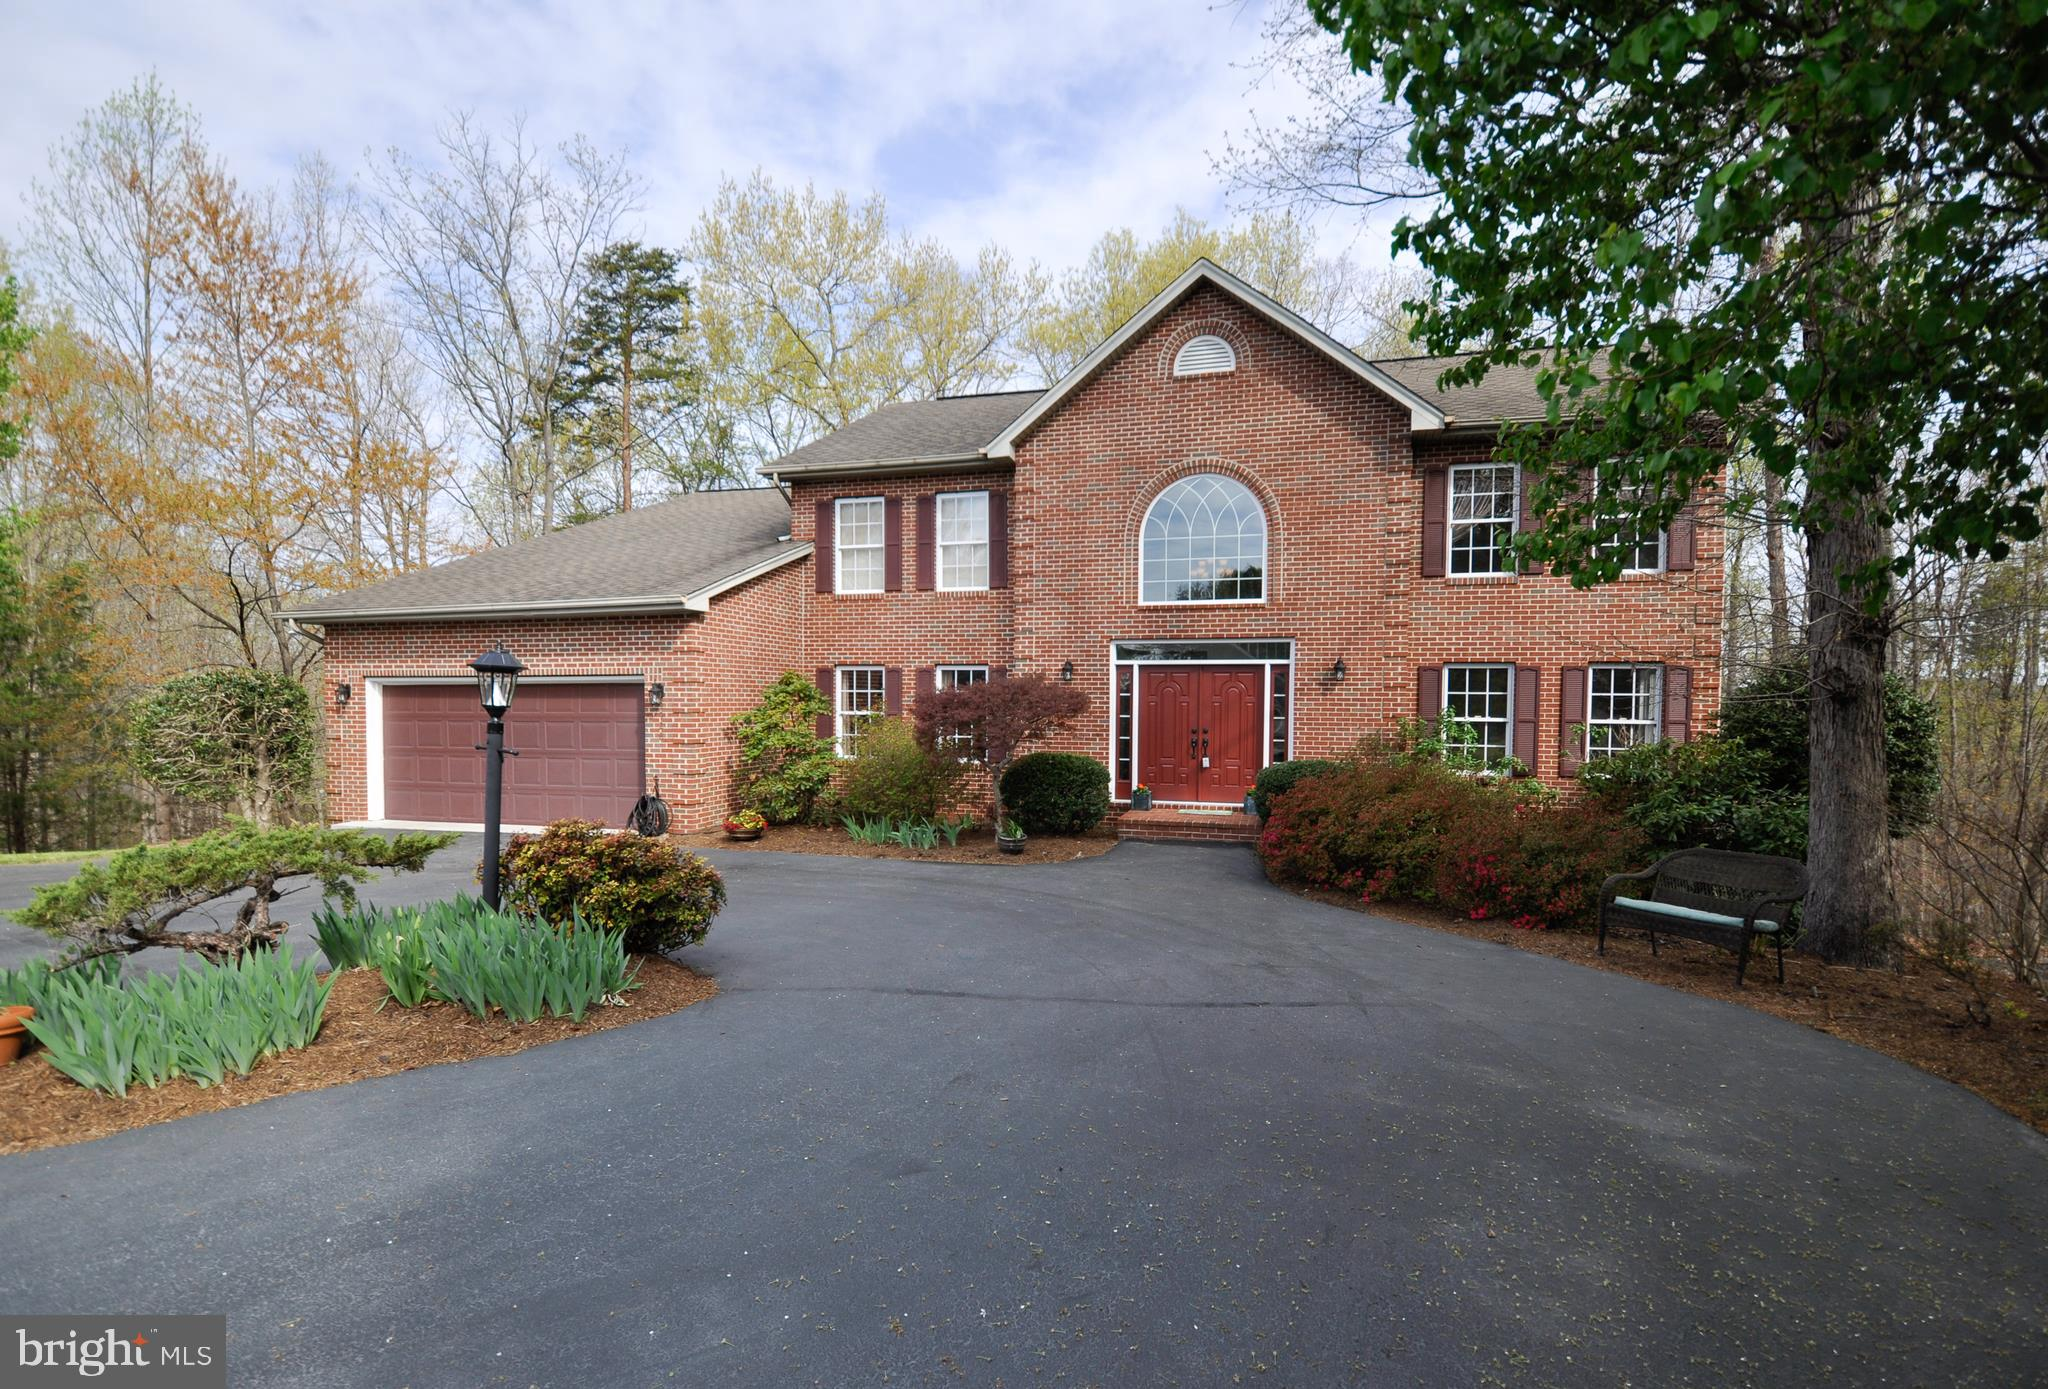 9928 AVALON WAY, FREDERICKSBURG, VA 22408